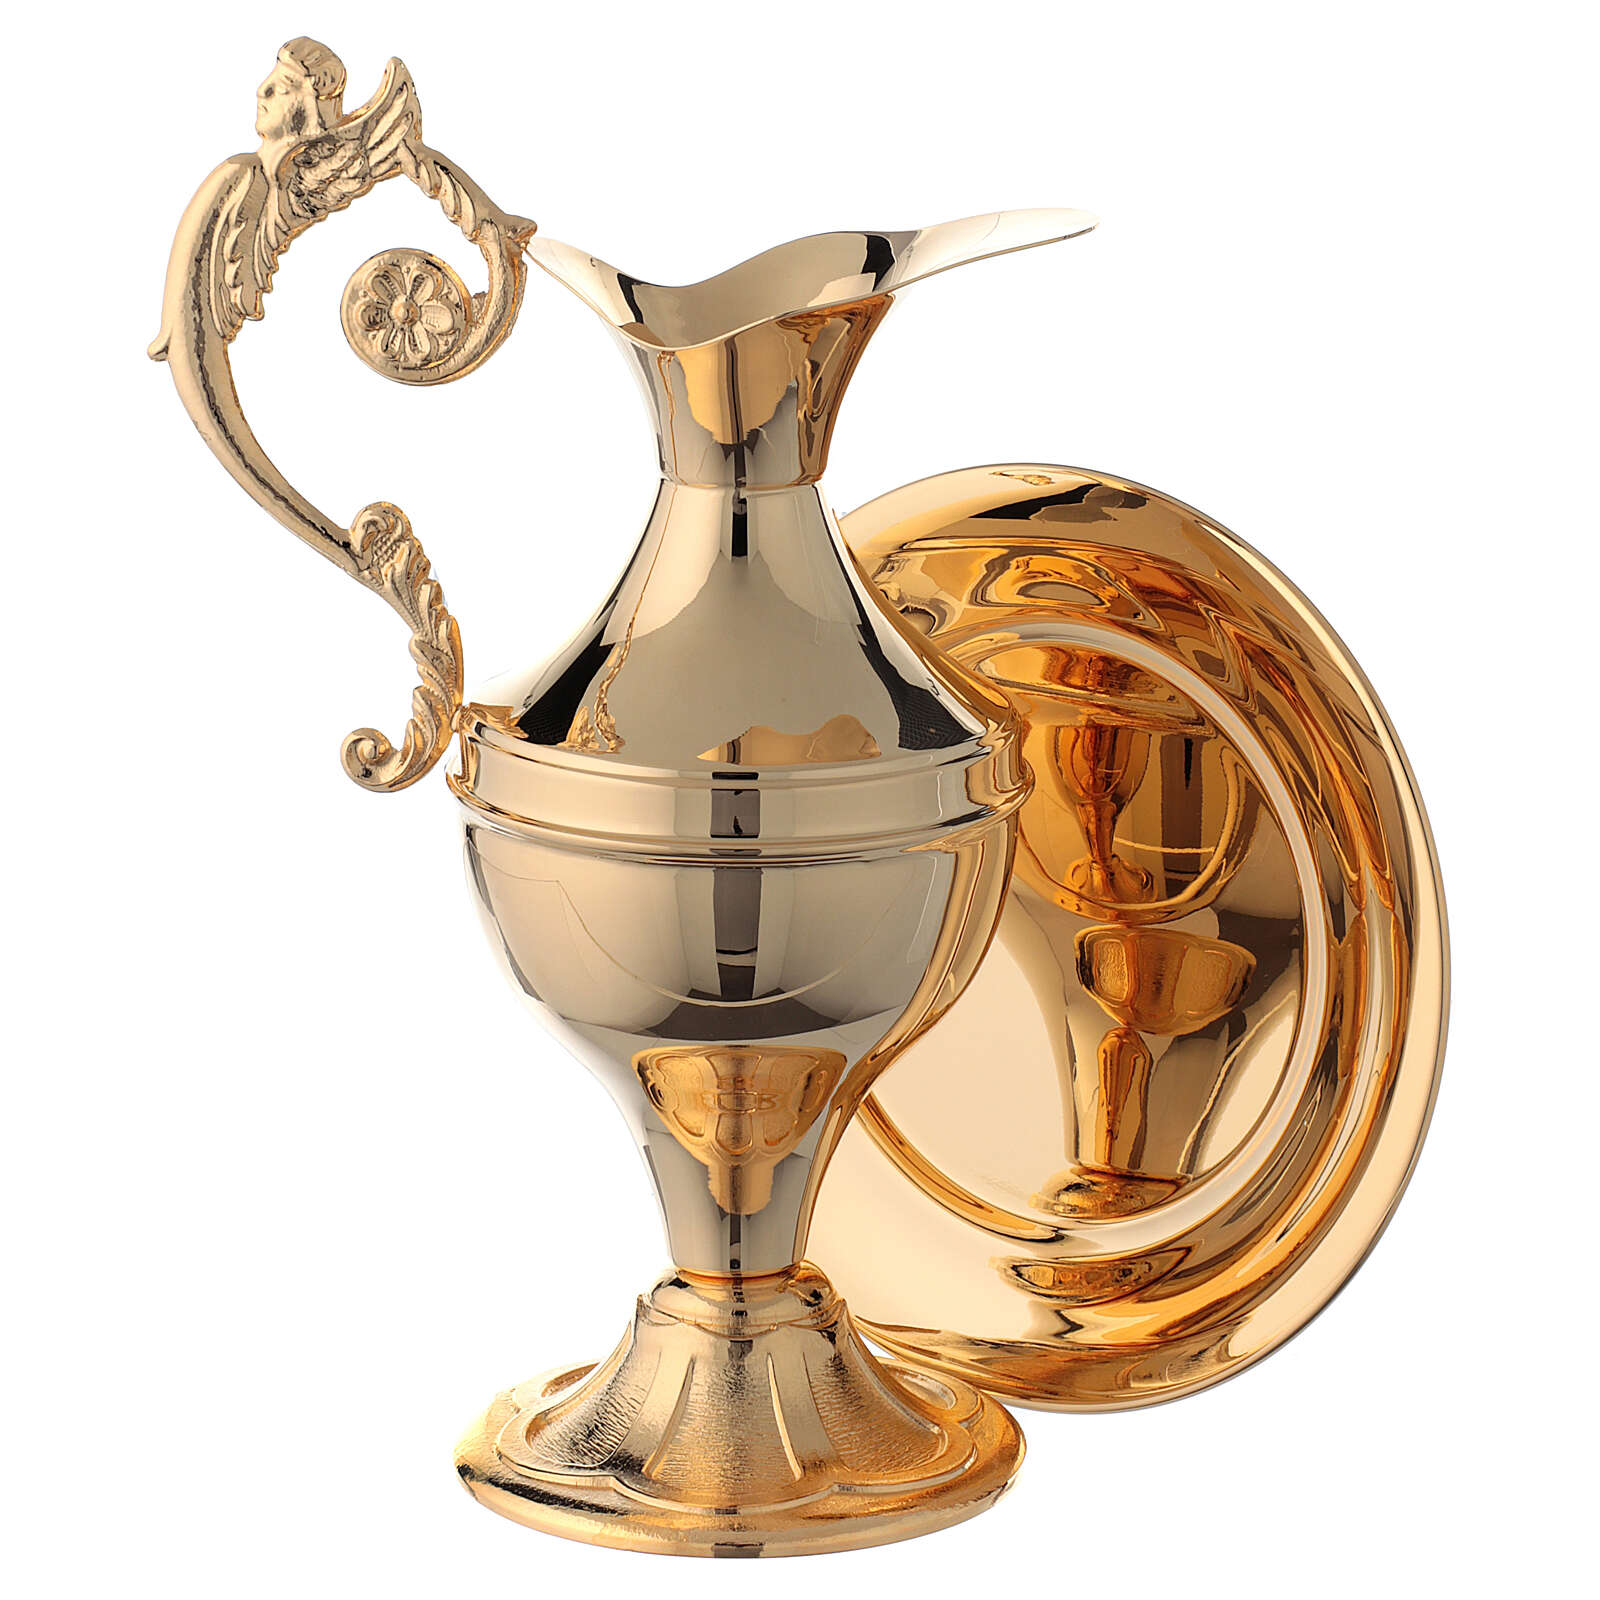 Ewer for hand washing ritual, gold plated brass 3